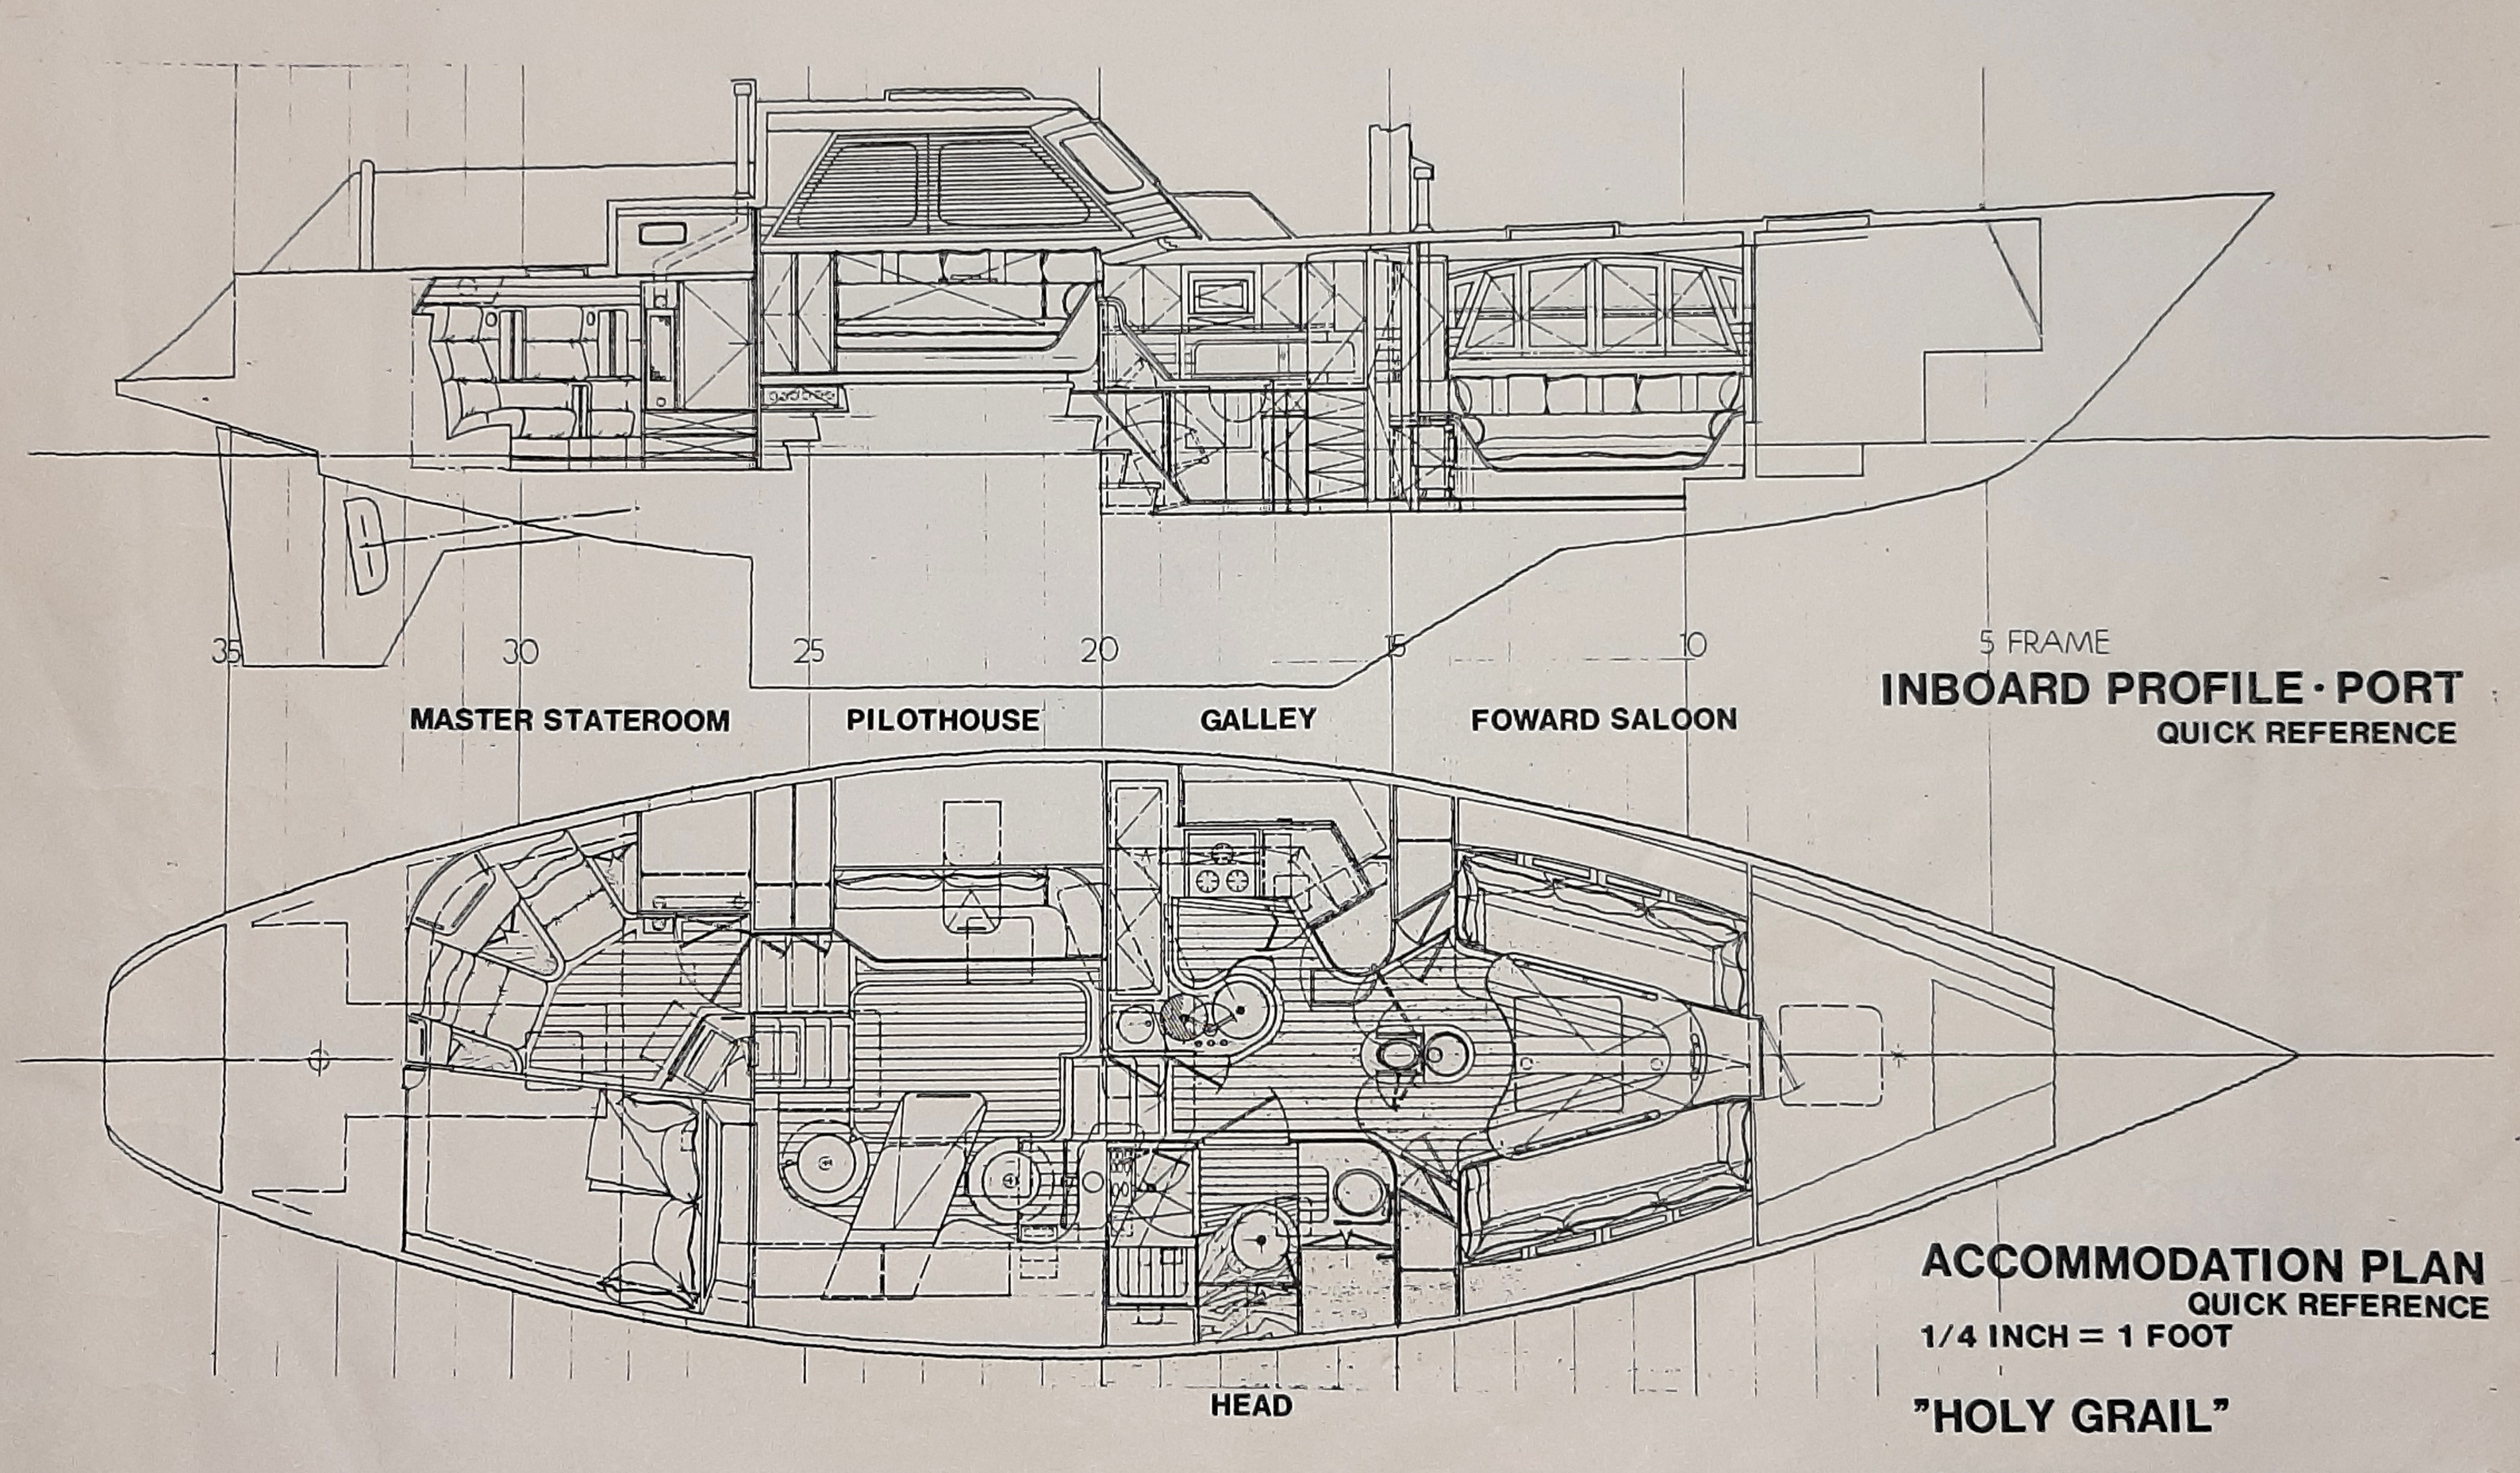 Holy Grail interior profile and plan views.